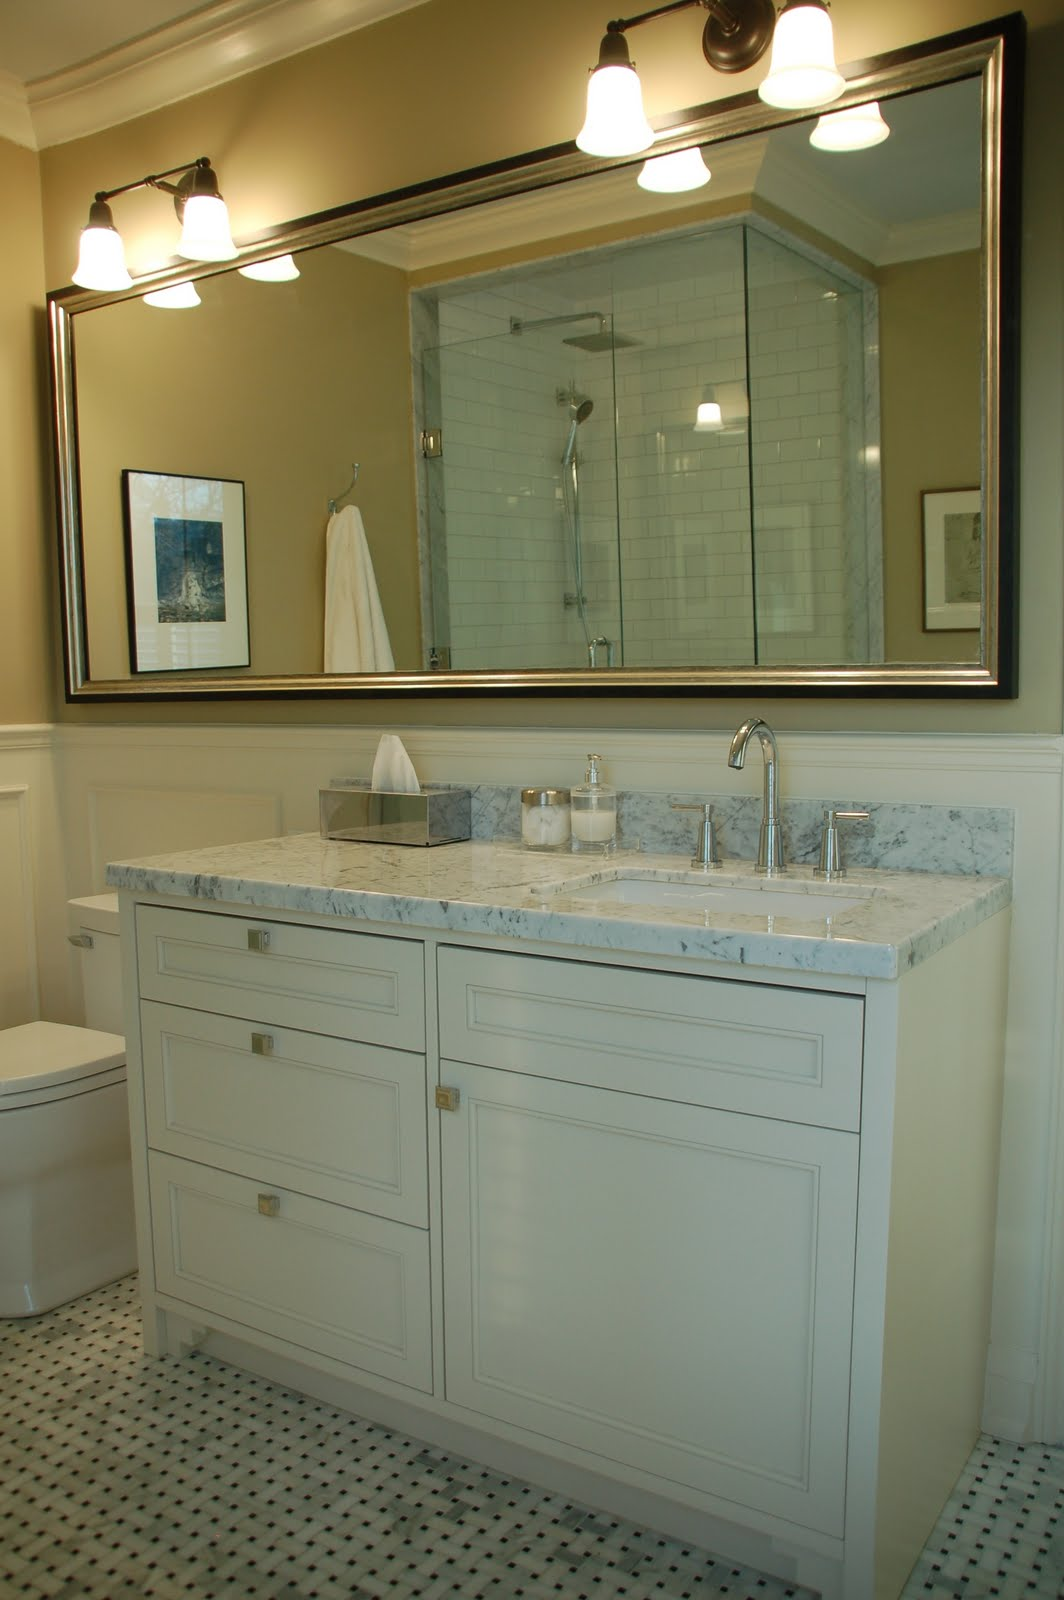 Creed before after e design bathroom project - Bathroom vanity tops with offset sink design ...